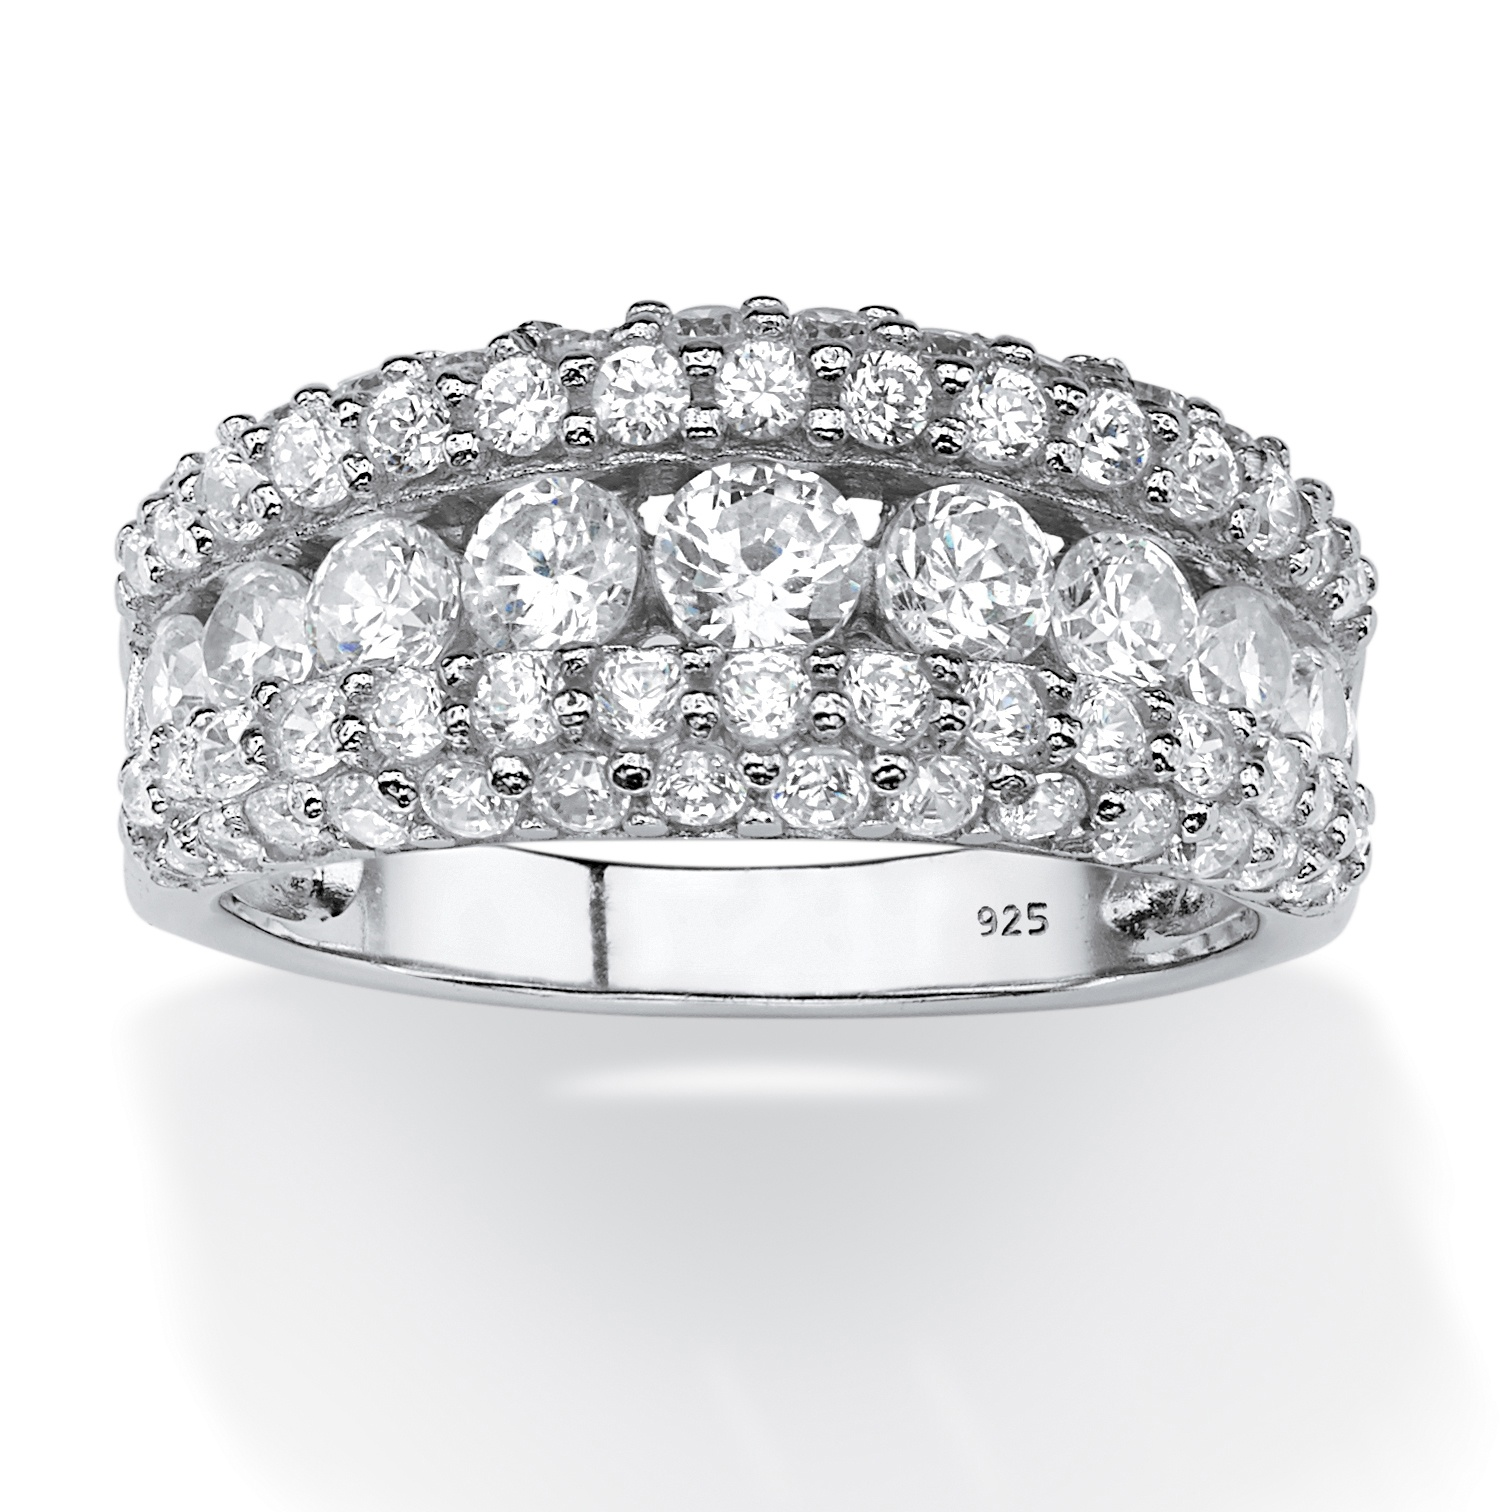 PalmBeach Jewelry 1.26 TCW Round Cubic Zirconia Row Ring in Platinum over Sterling Silver at Sears.com